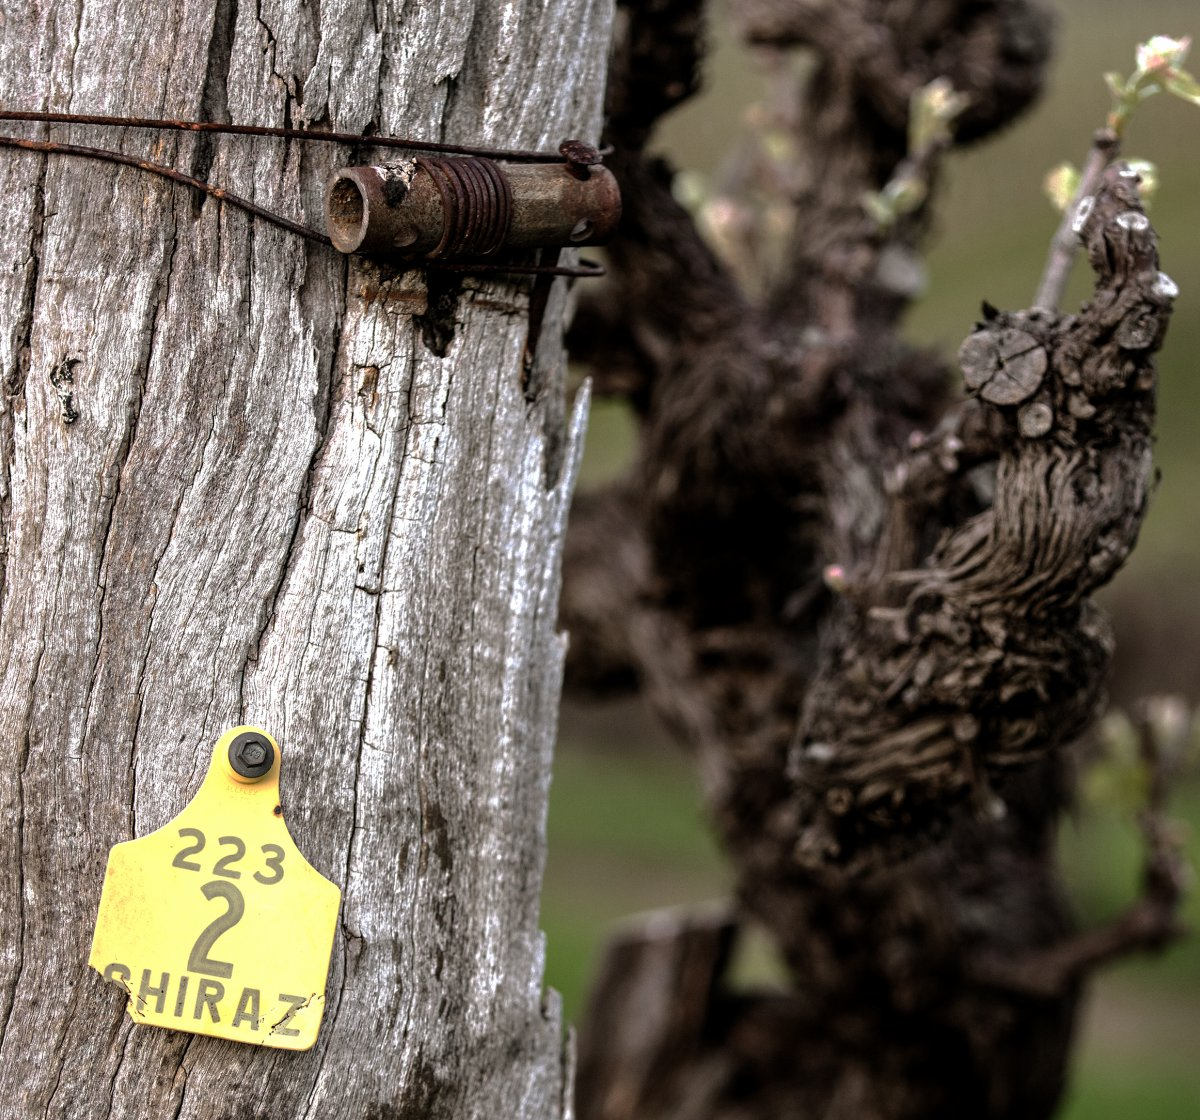 Vine post with Shiraz label